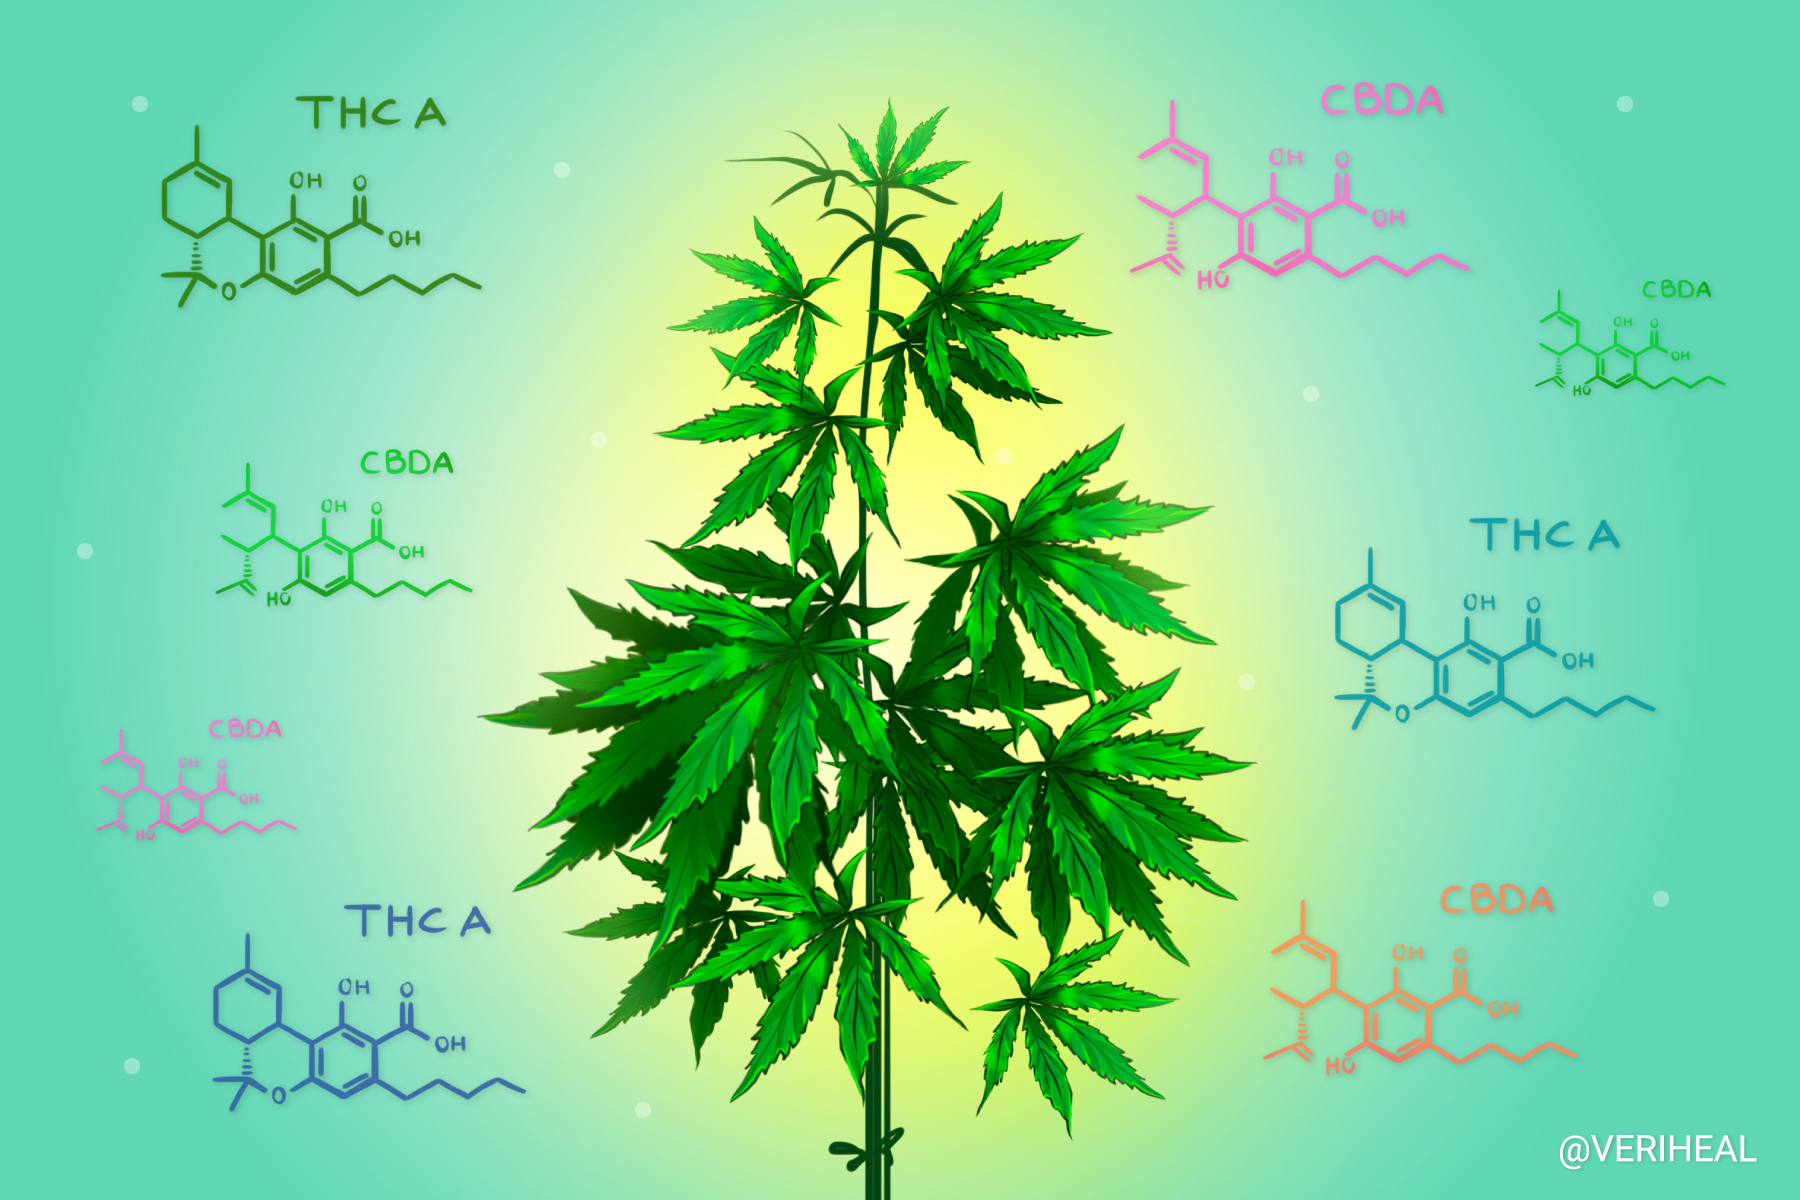 Dr. Mechoulam Explores Cannabinoid Acids and Their Benefits